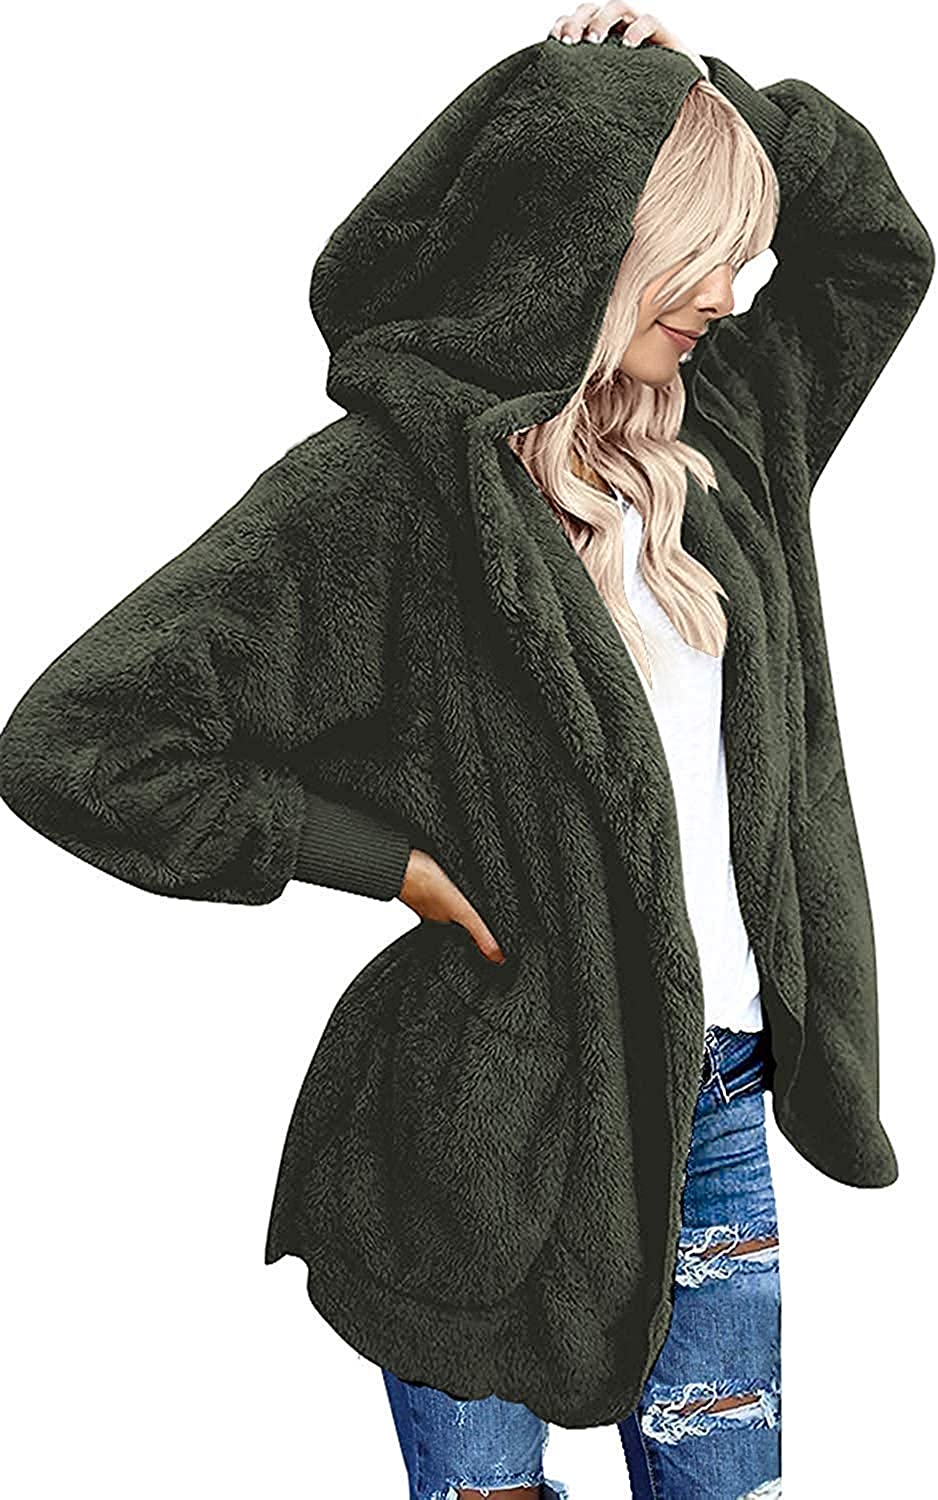 Womens Fashion Long Sleeve Zip Up Sherpa Fleece Cardigan Coat Jacket Pockets